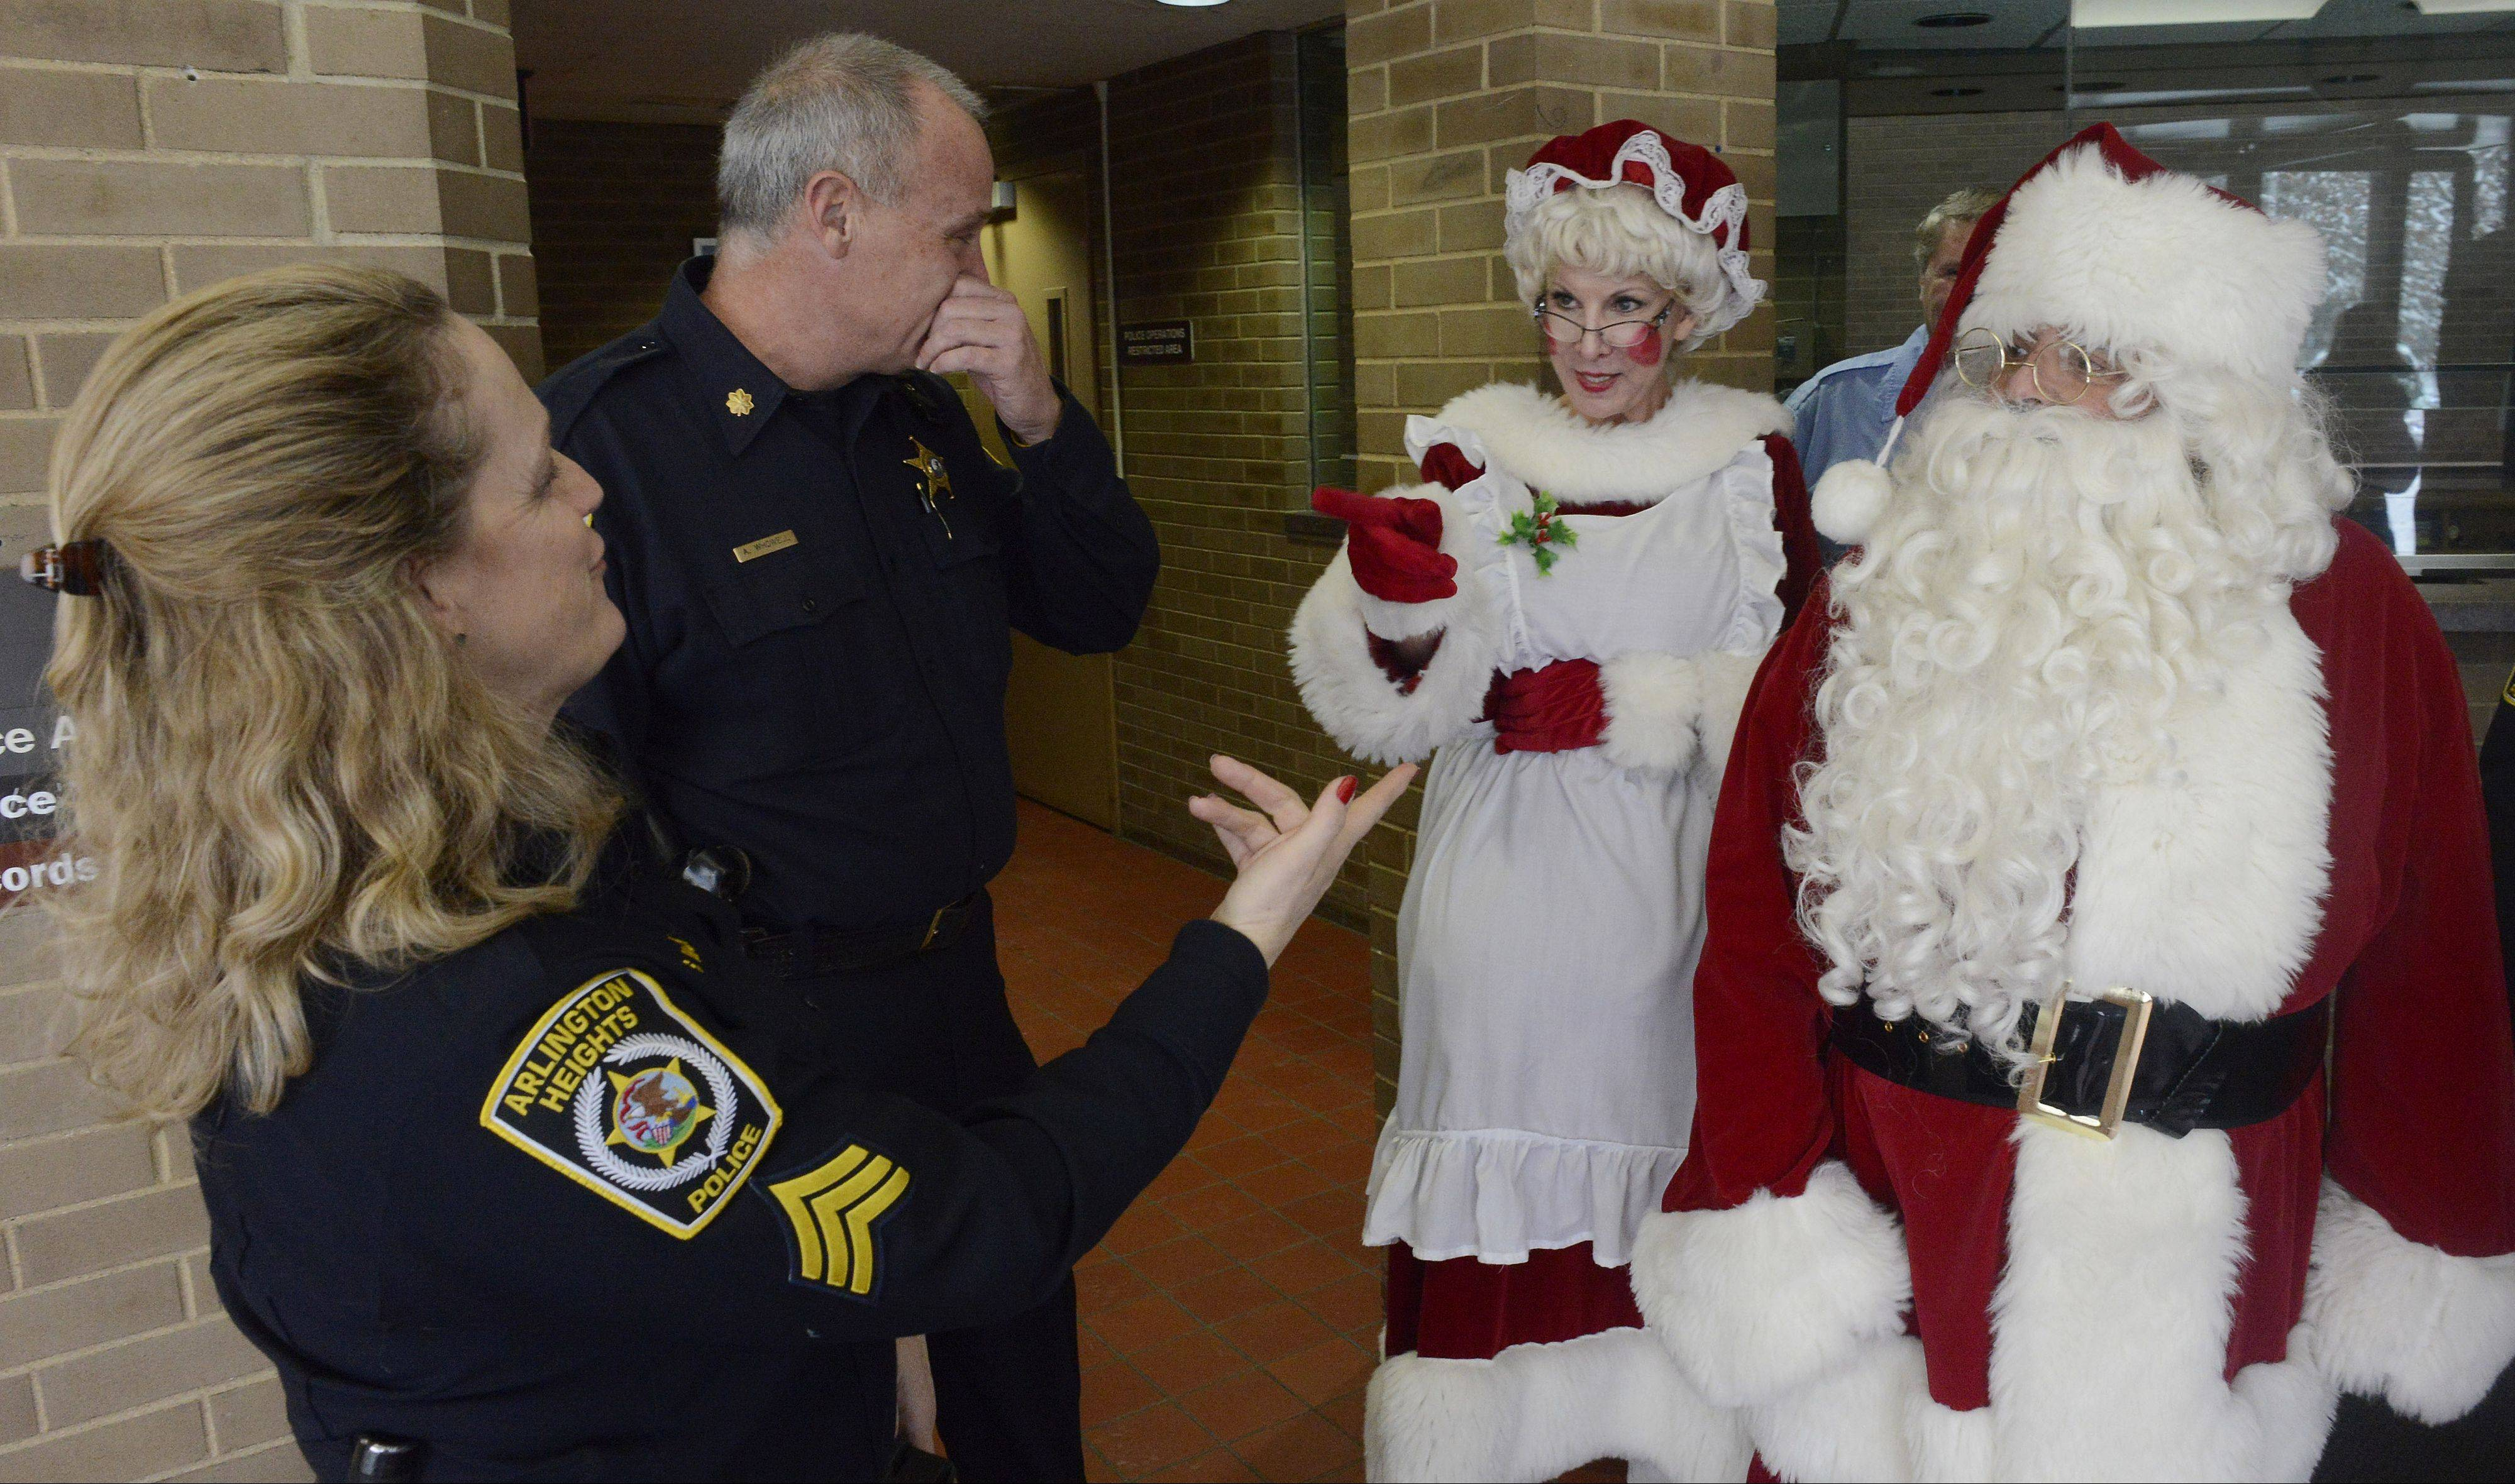 Sgt. Stephanie Mack, left, and Cmdr. Andrew Whowell say goodbye to Santa and Mrs. Claus at the conclusion of a stop Saturday by the Chicago Police Memorial Foundation's Operation Santa at the Arlington Heights Police Department to drop off gifts for Officer Michael McEvoy.